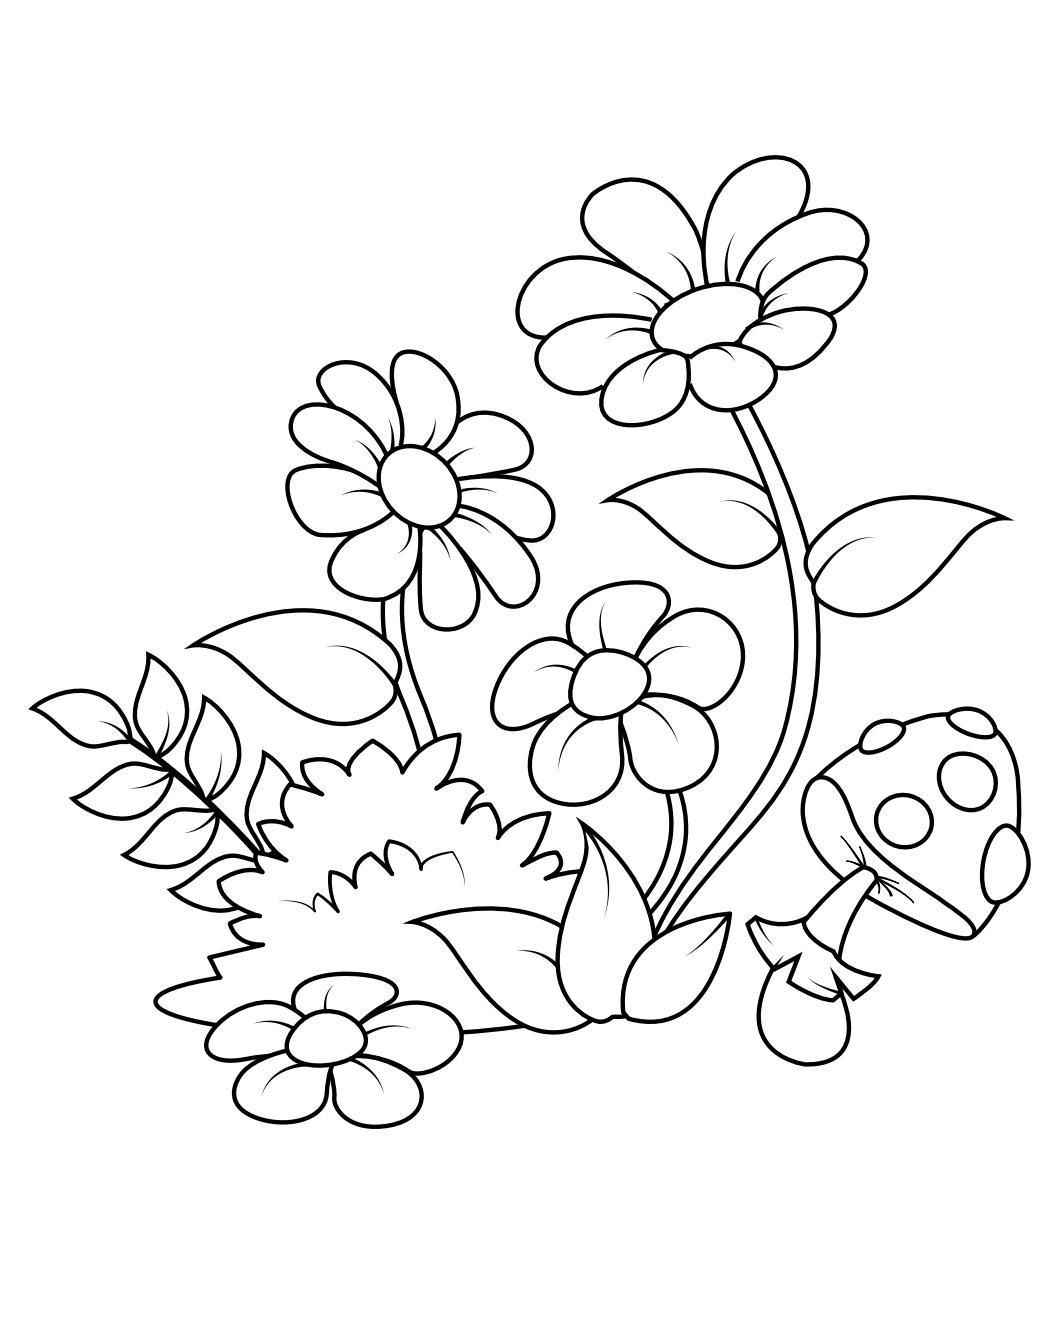 Flower Coloring Pages - Printable Coloring Book For Kids | Nuevas ...